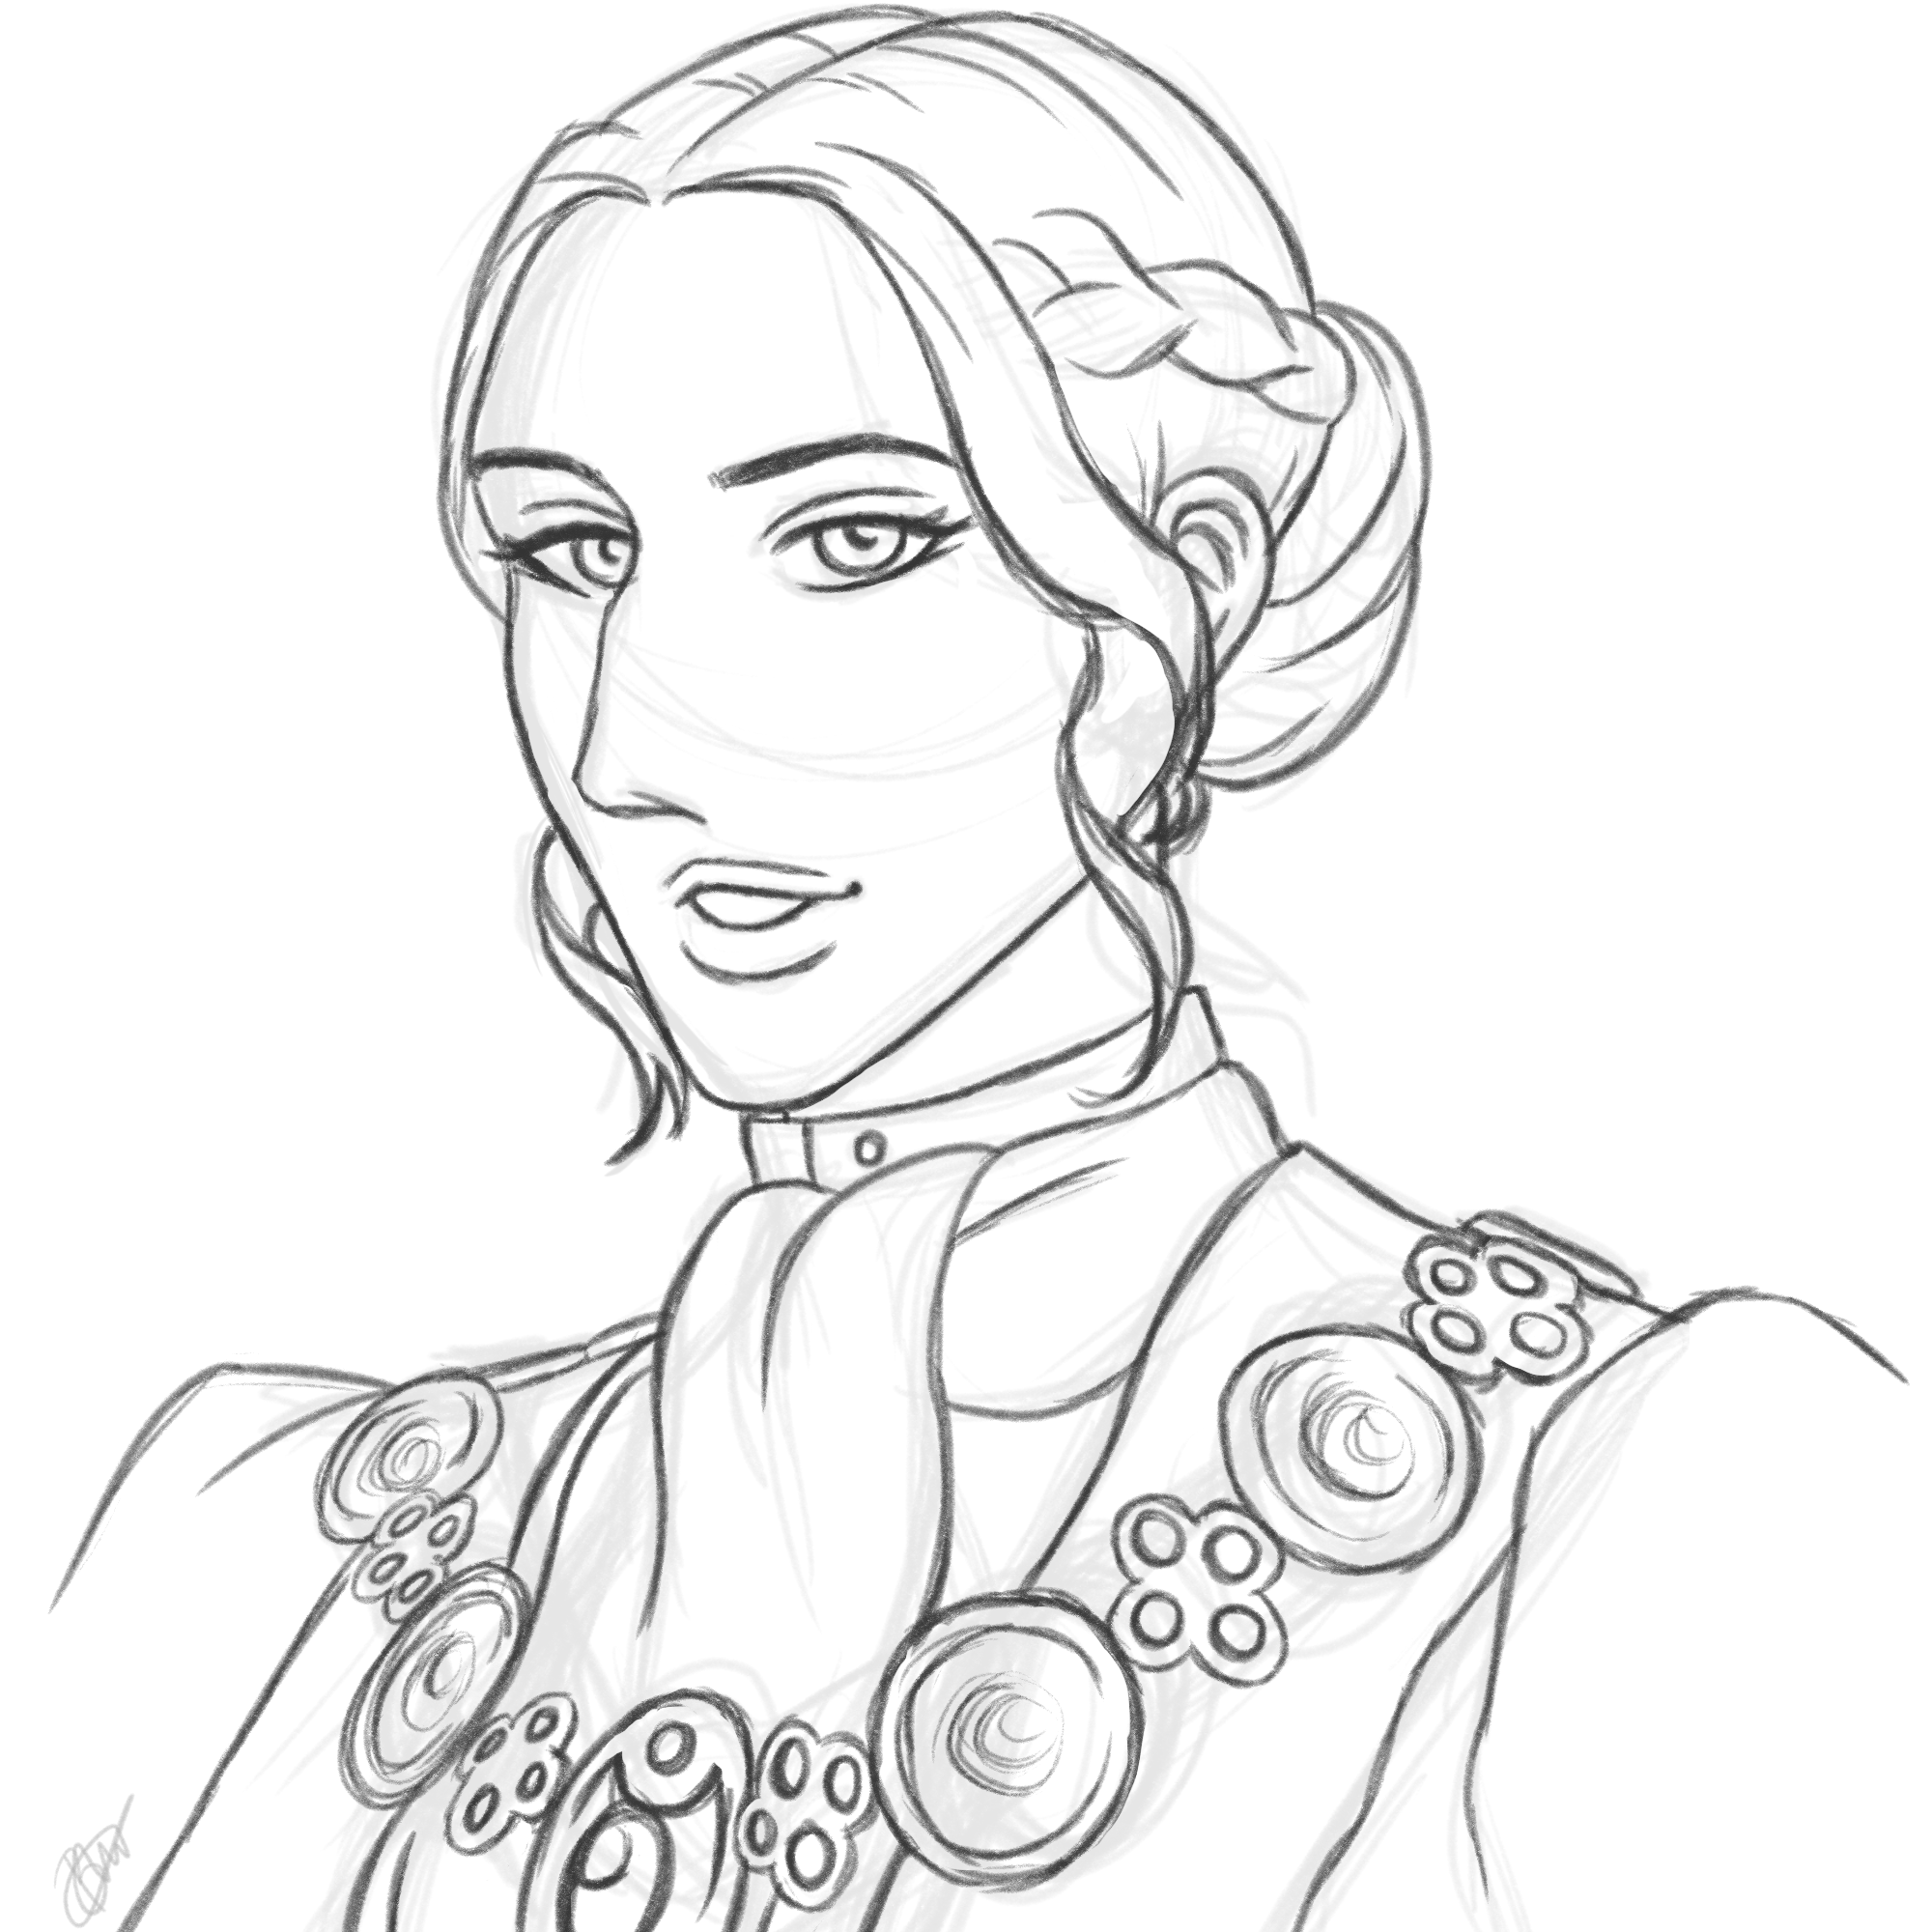 Josephine Montilyet from Dragon Age: Inquisition drawn in my manga and anime inspired art style.